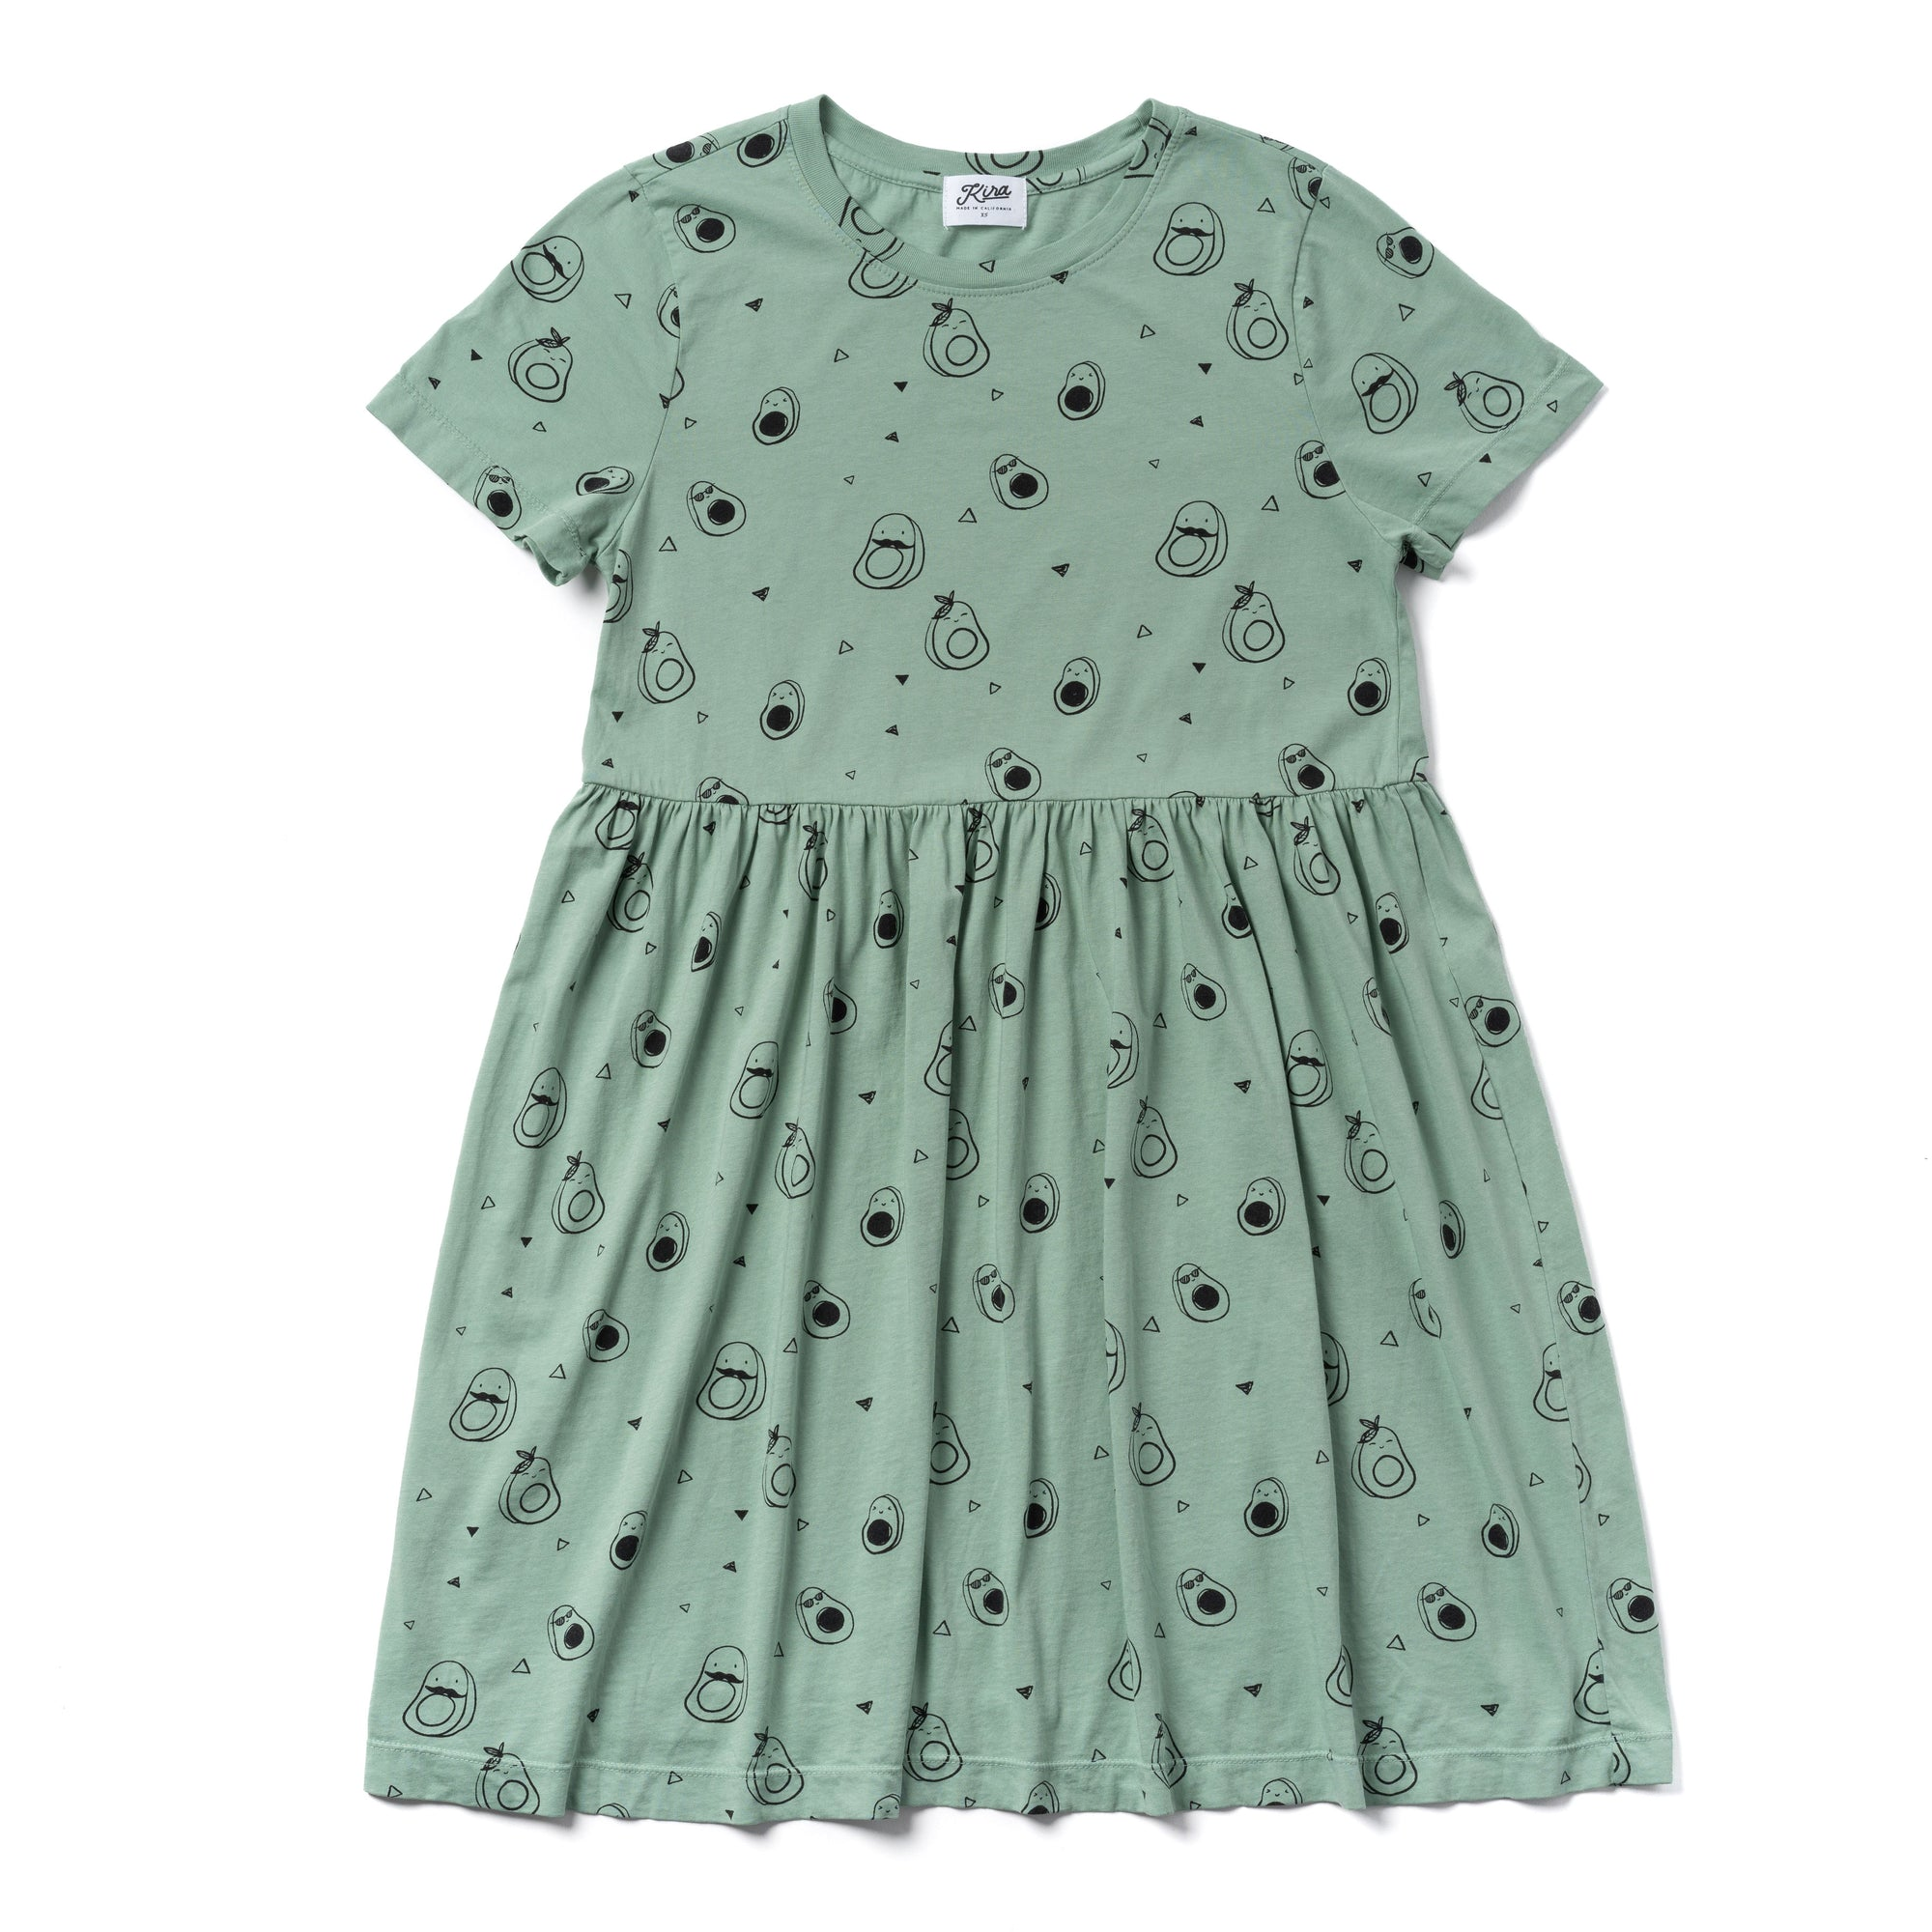 Avocado Print Baby Doll Dress, Celadon | Women